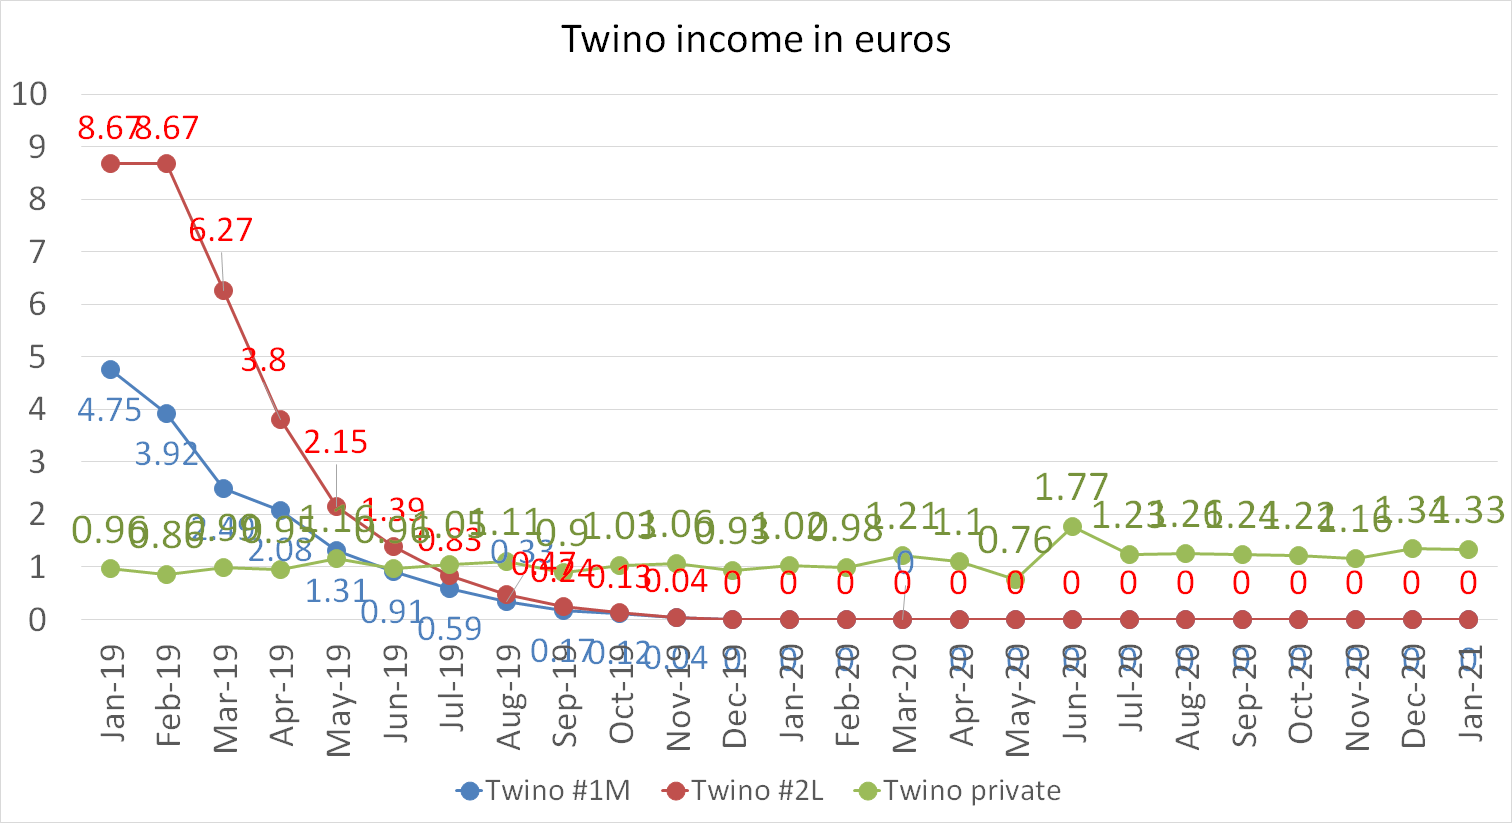 Twino income in euros january 2021